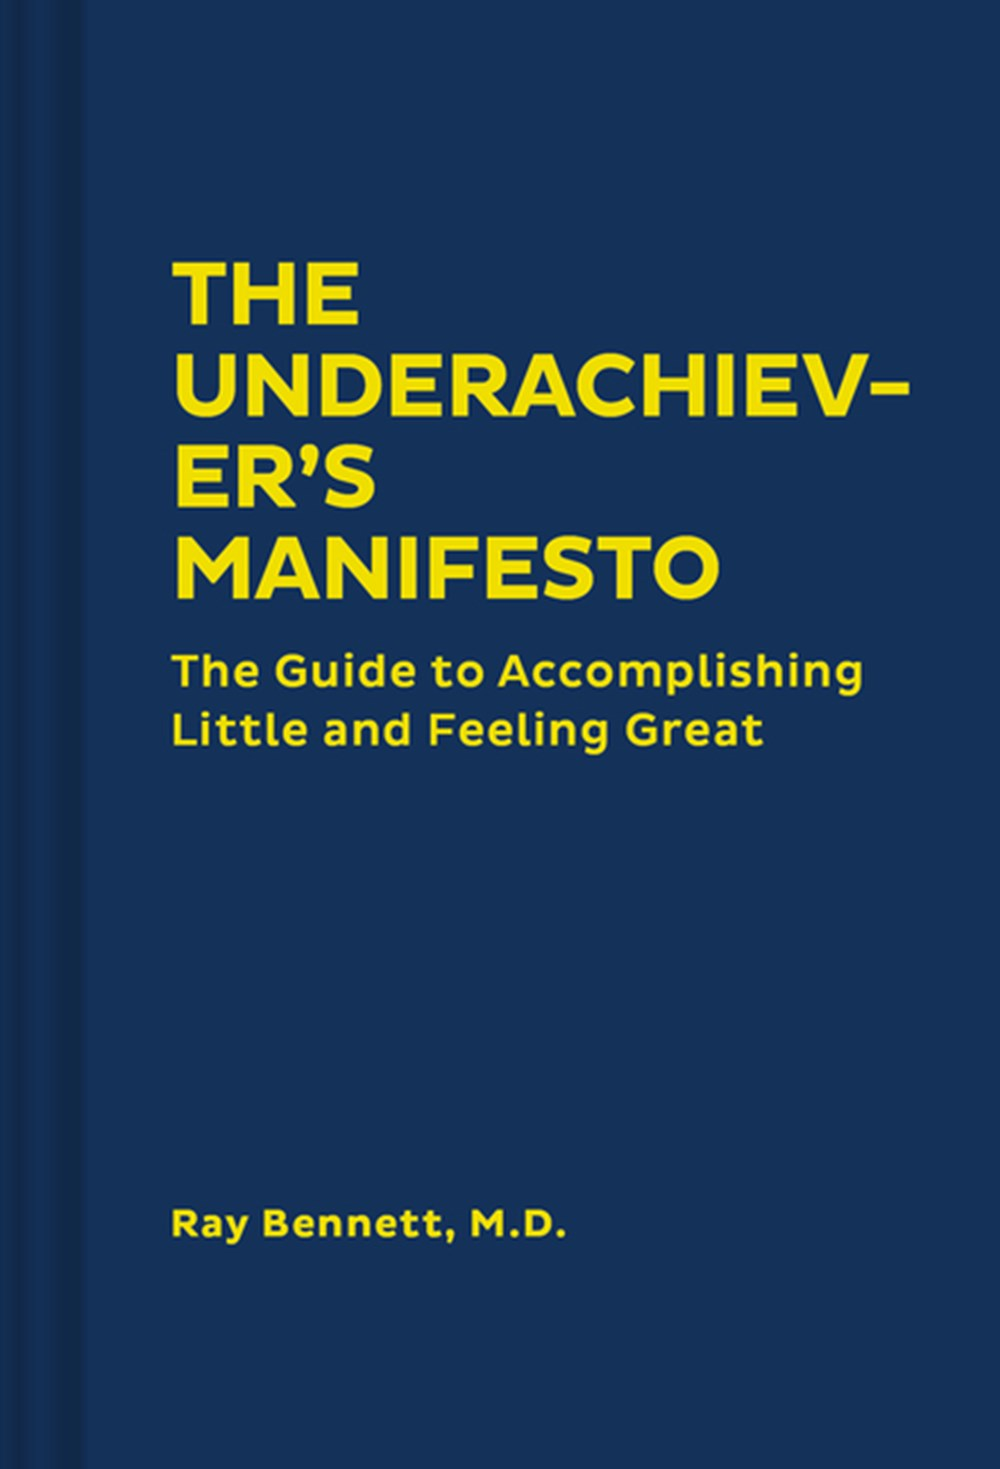 Underachiever's Manifesto The Guide to Accomplishing Little and Feeling Great (Funny Self-Help Book,